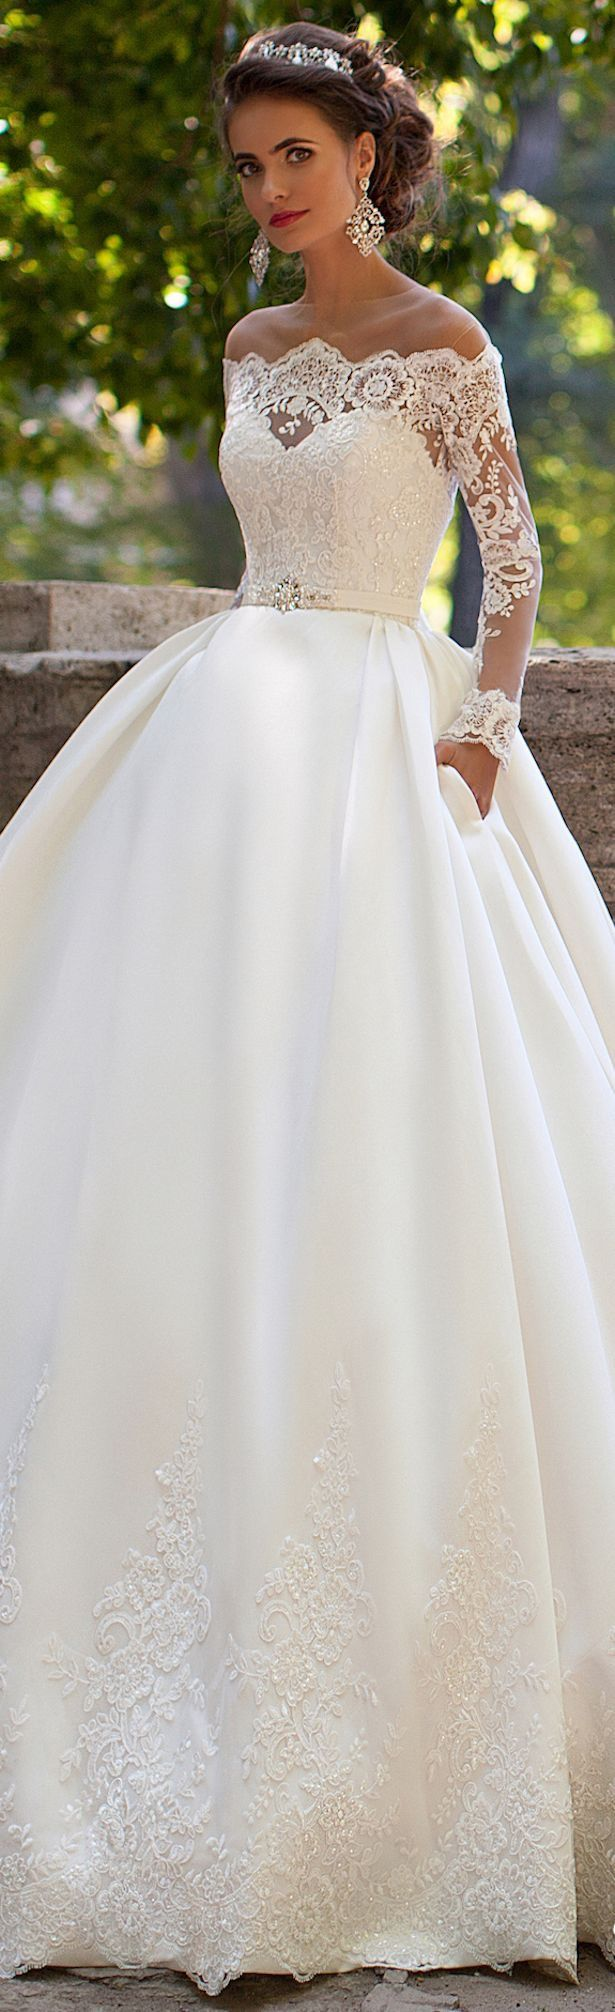 For when you want that fairytale princess look wedding